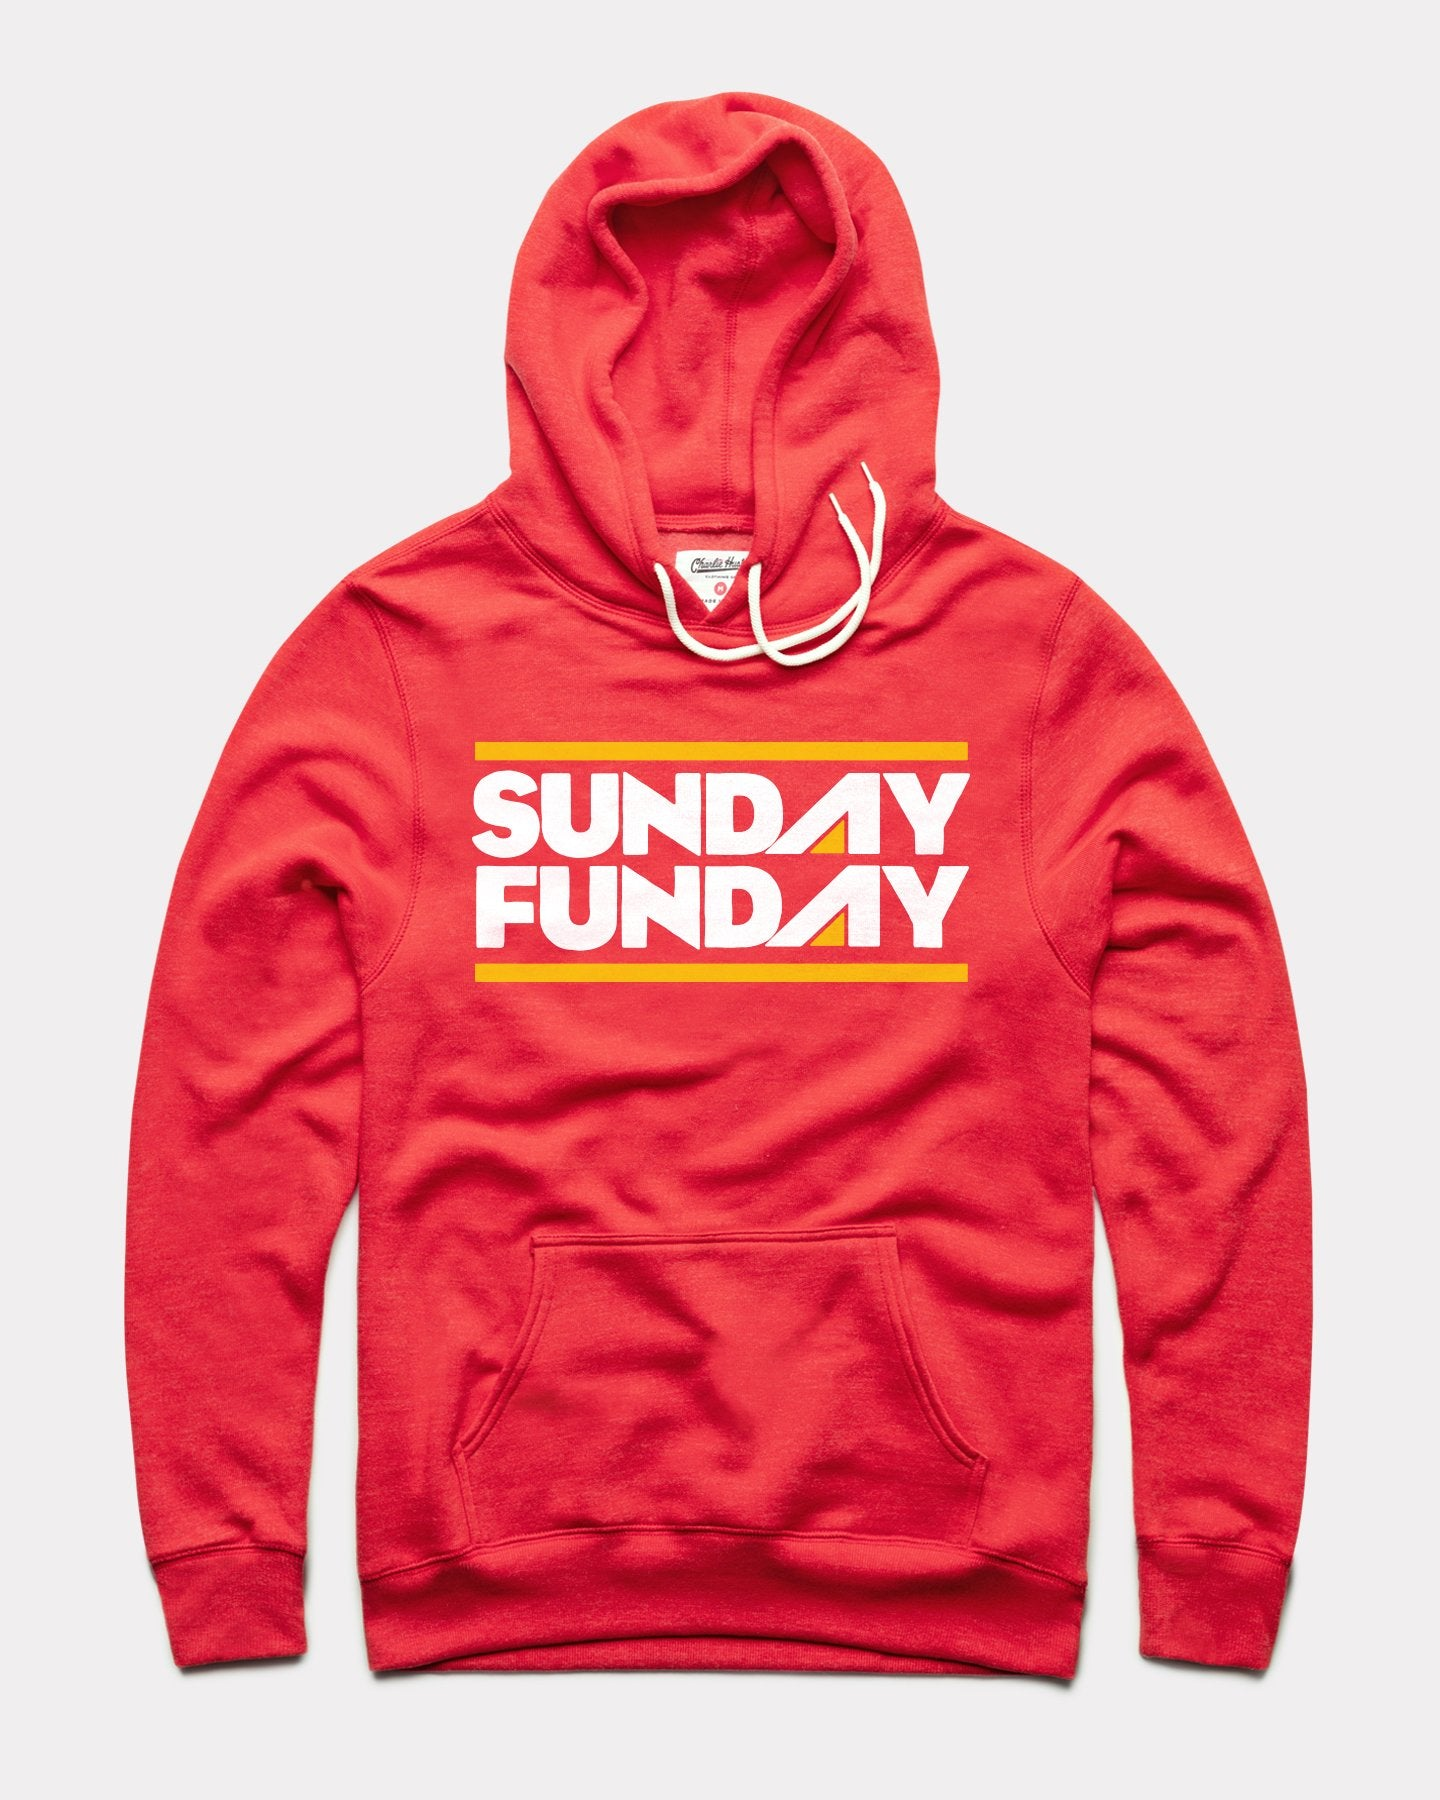 Red Sunday Funday Vintage Arrowhead Hoodie Sweatshirt